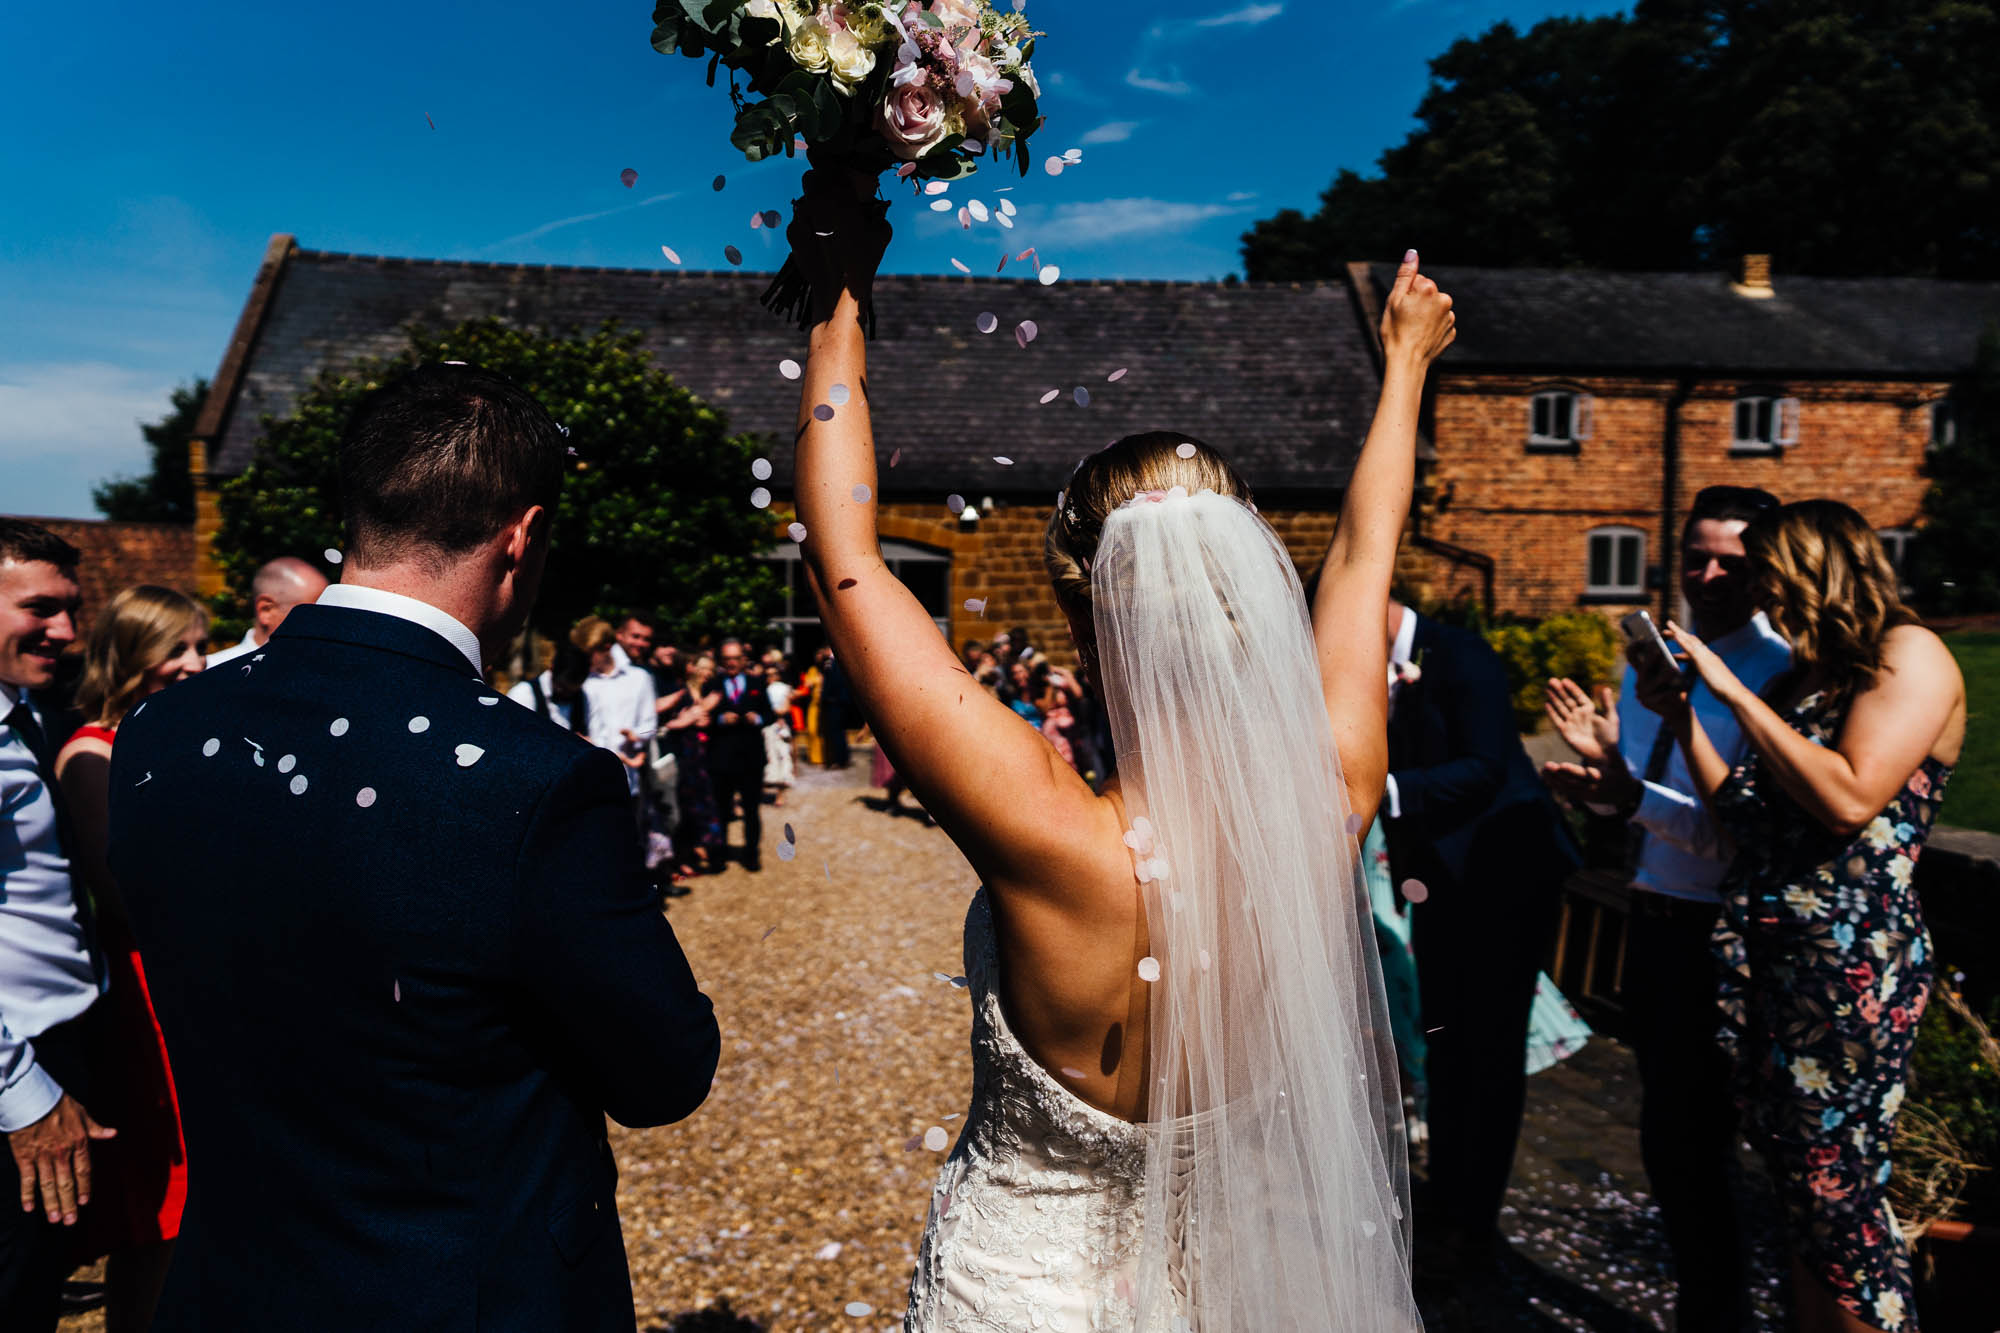 wedding-at-the-barns-at-hunsbury-hill-30